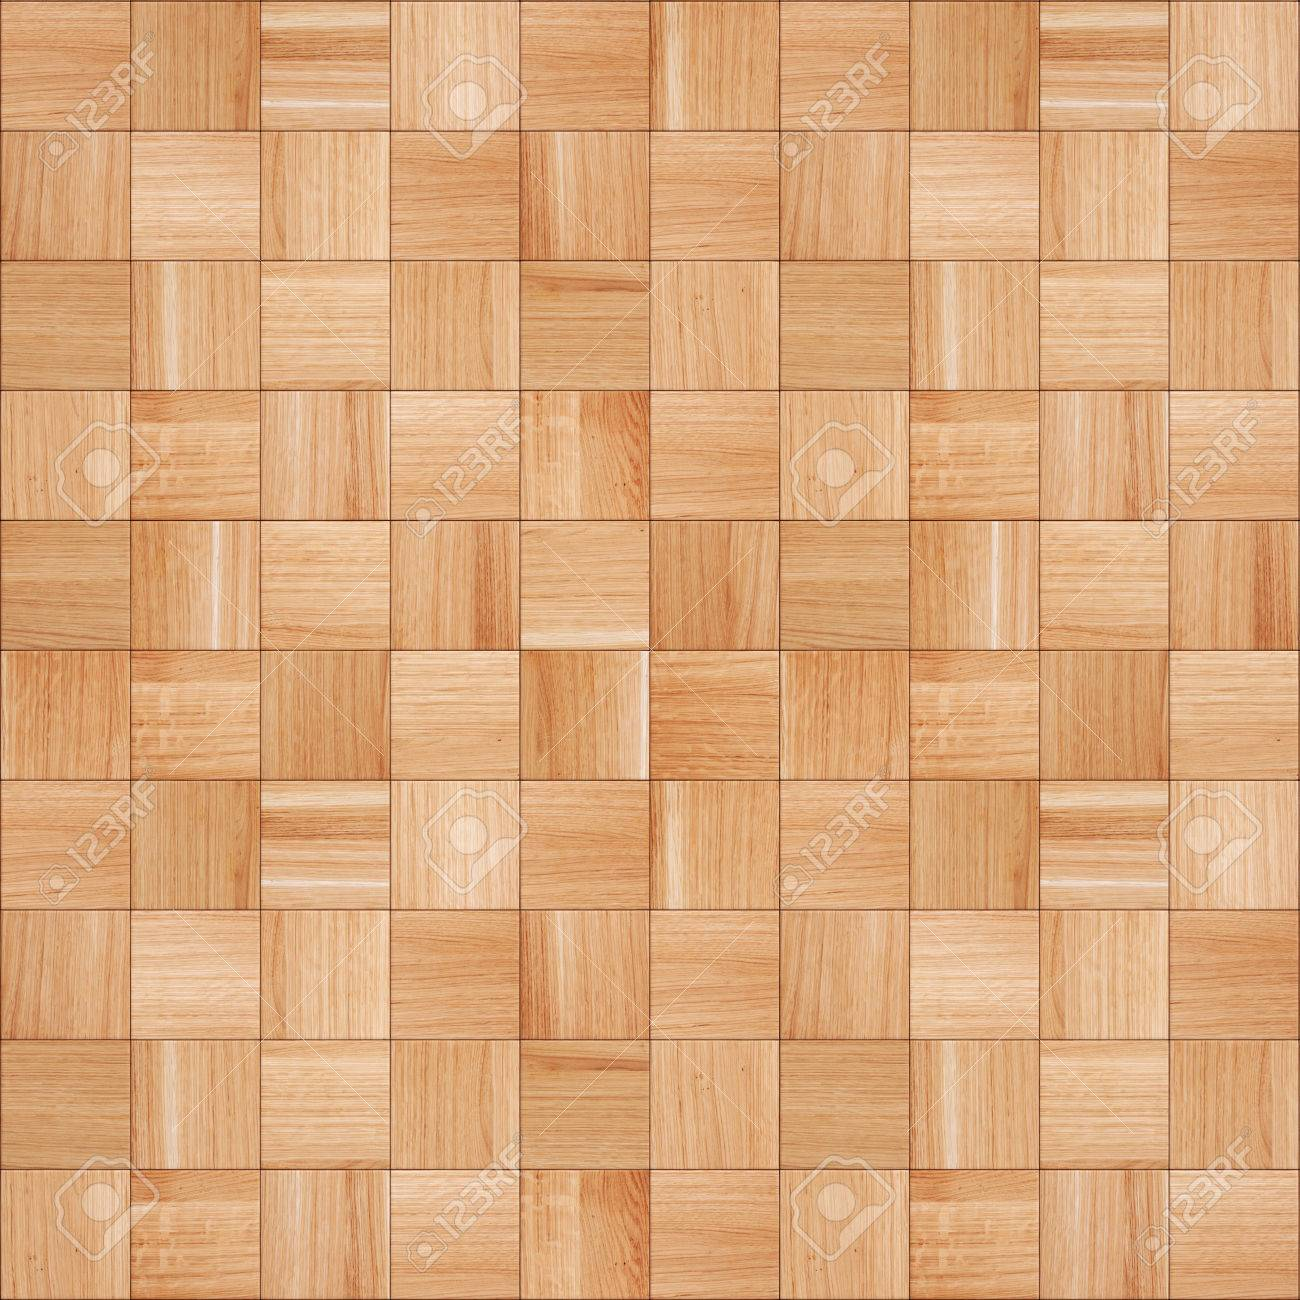 Light wood texture - Stock Photo The Light Brown Wood Texture Of Floor With Natural Patterns